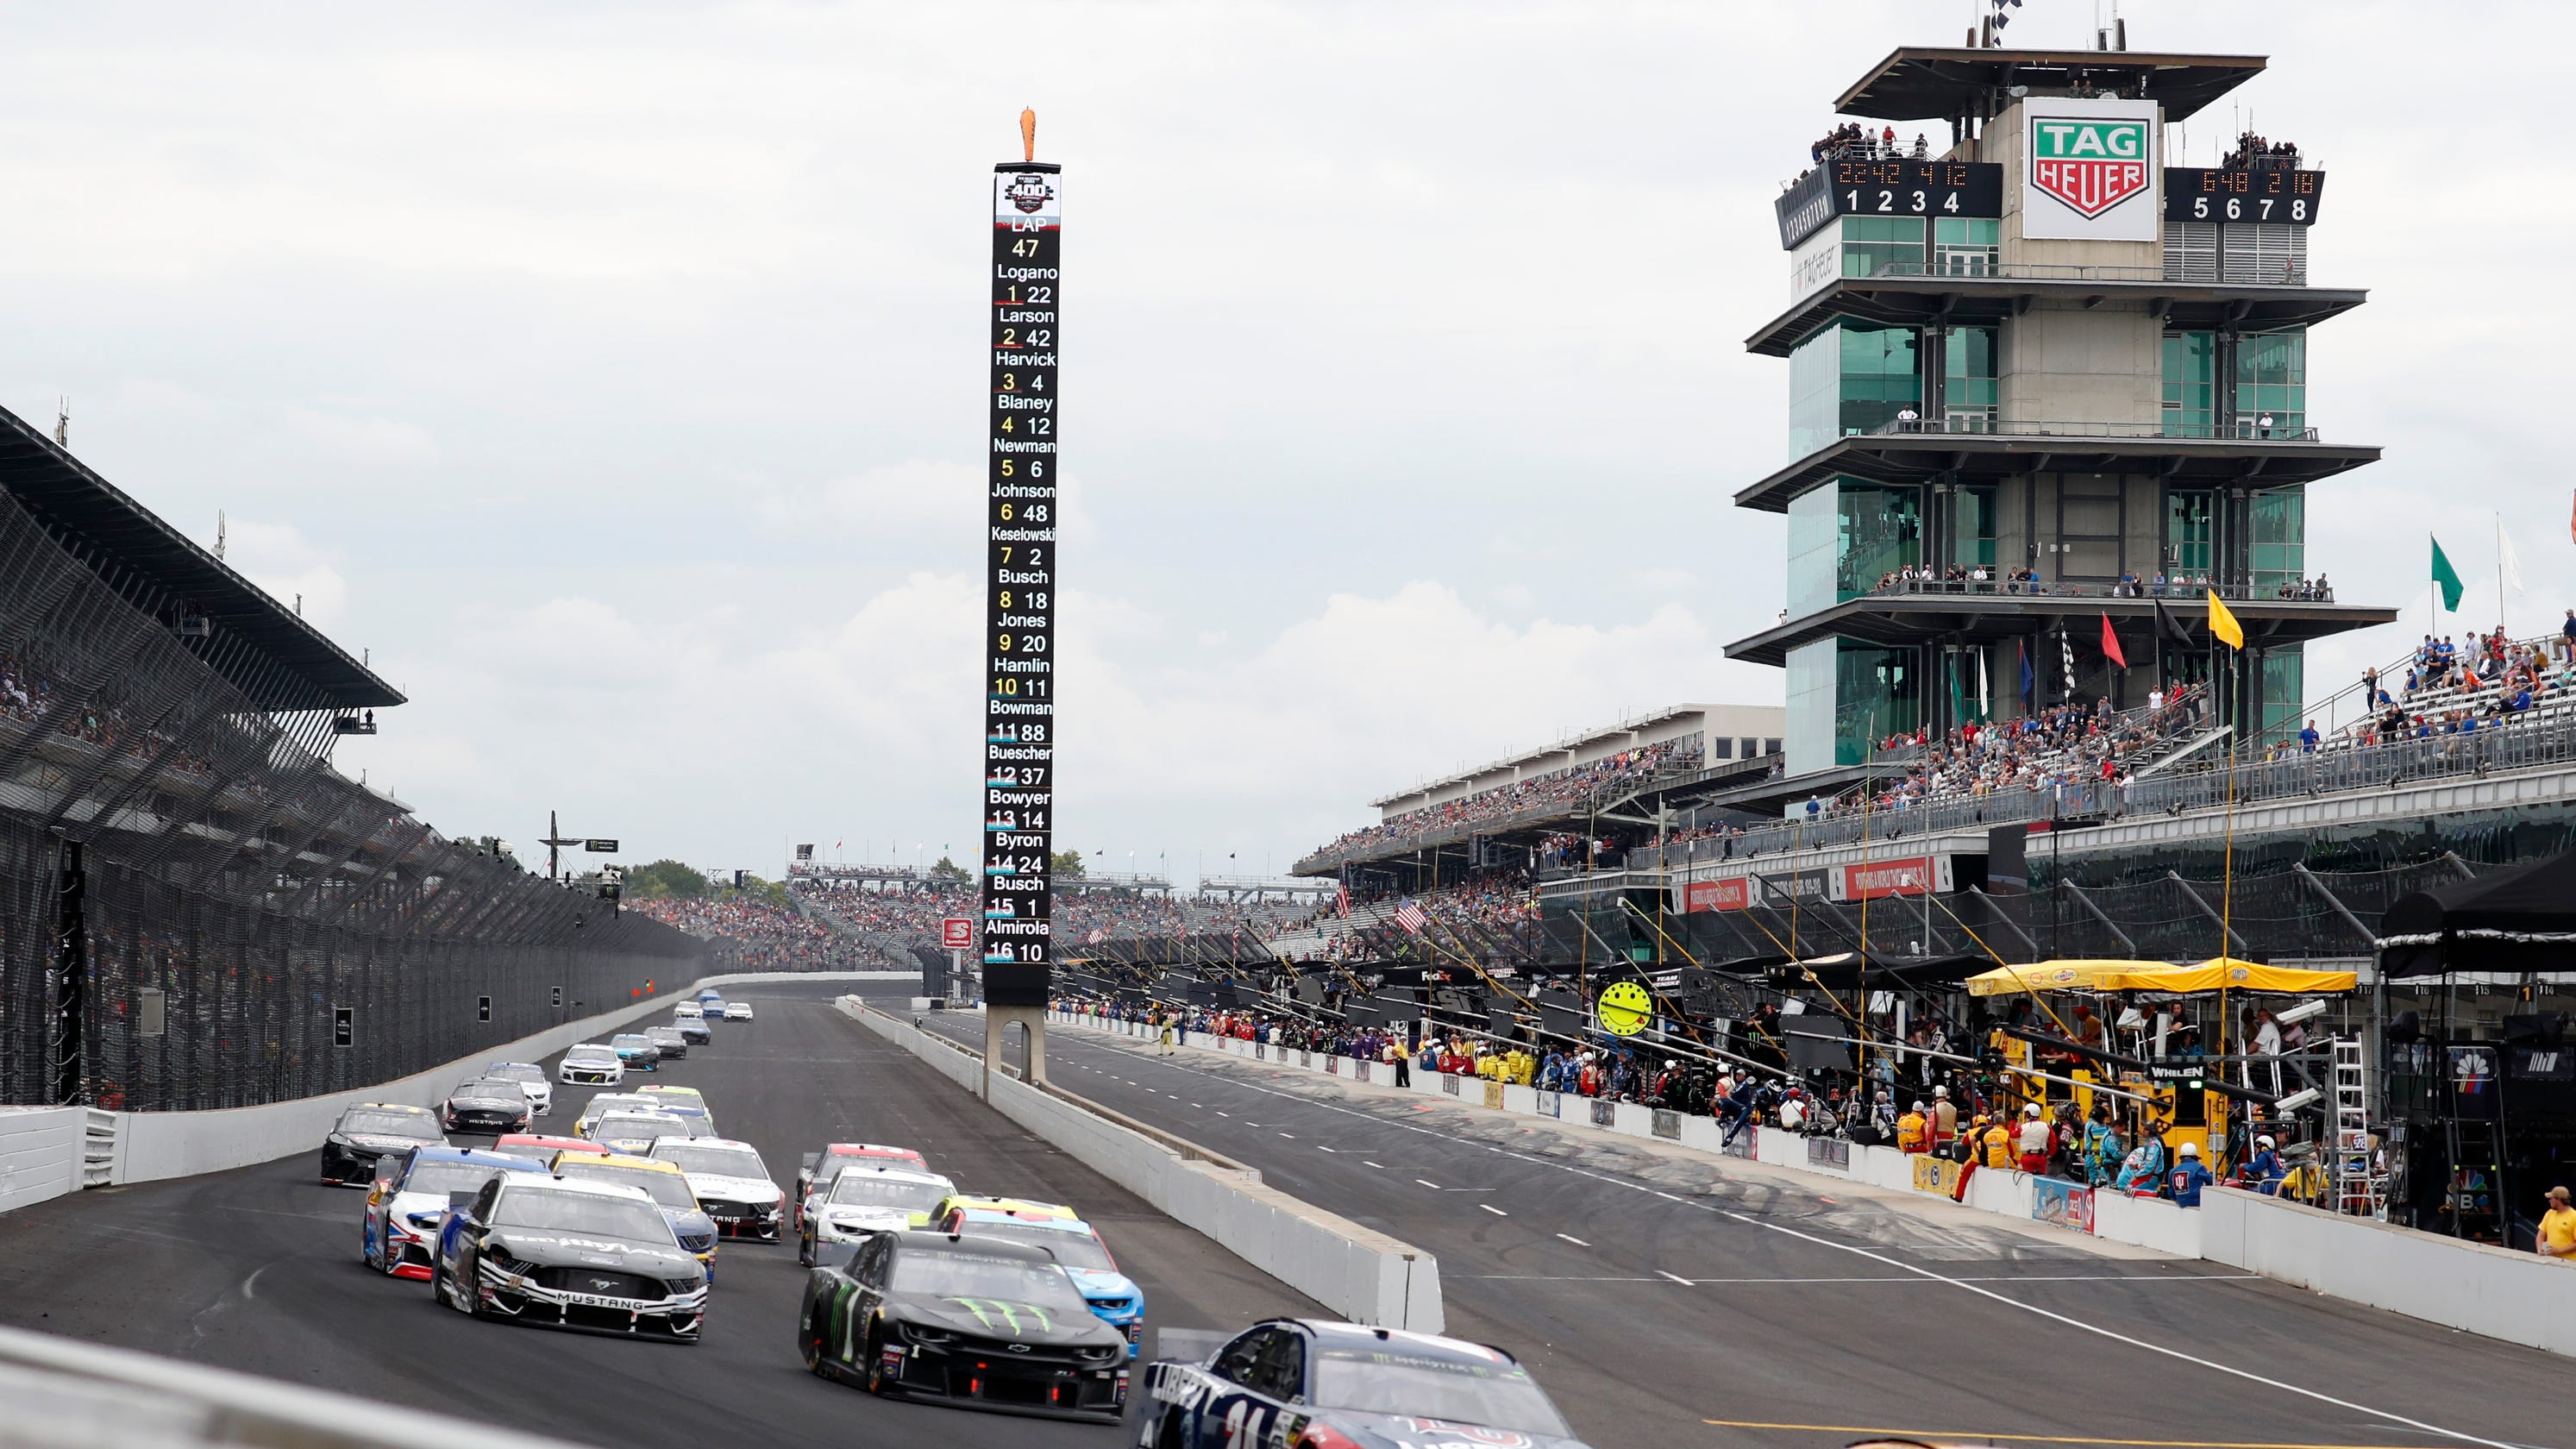 IndyCar-NASCAR doubleheader at Indianapolis Motor Speedway adds 'cachet' to motorsports